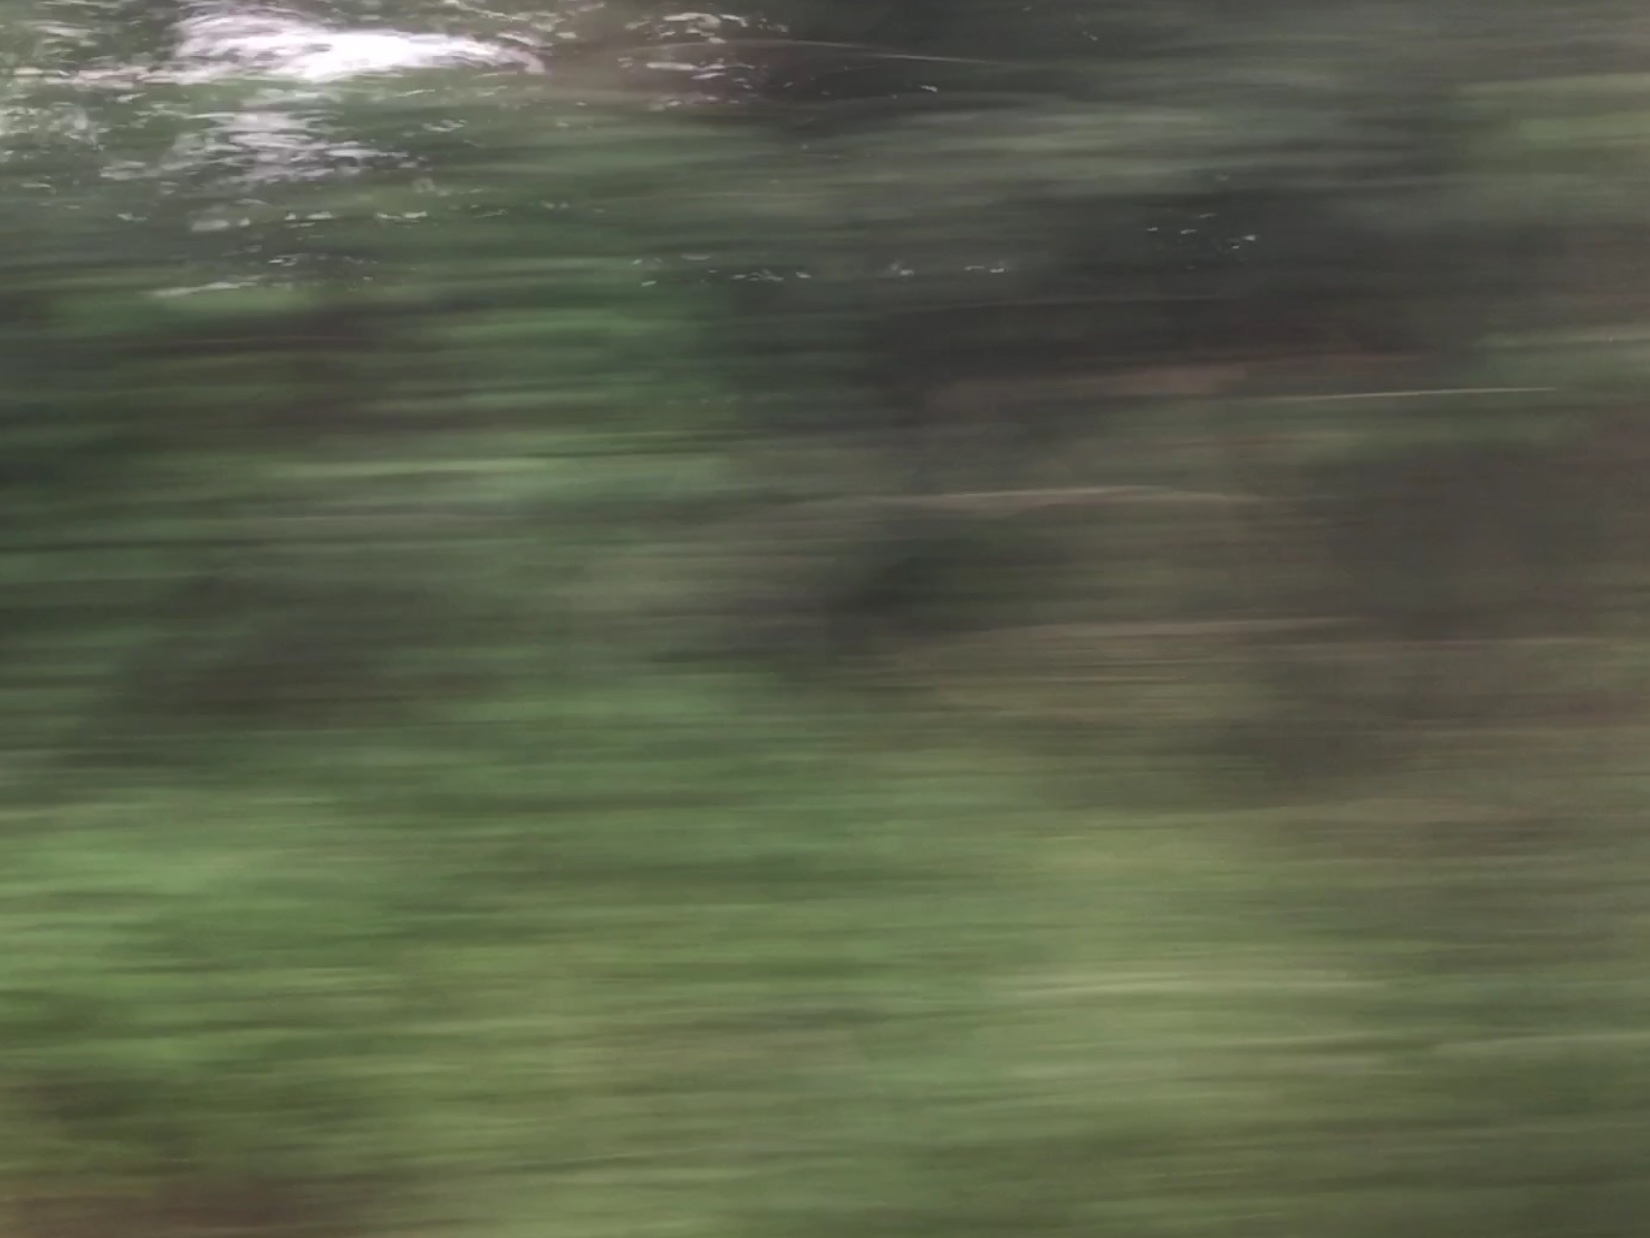 Passing Trees at High Speed